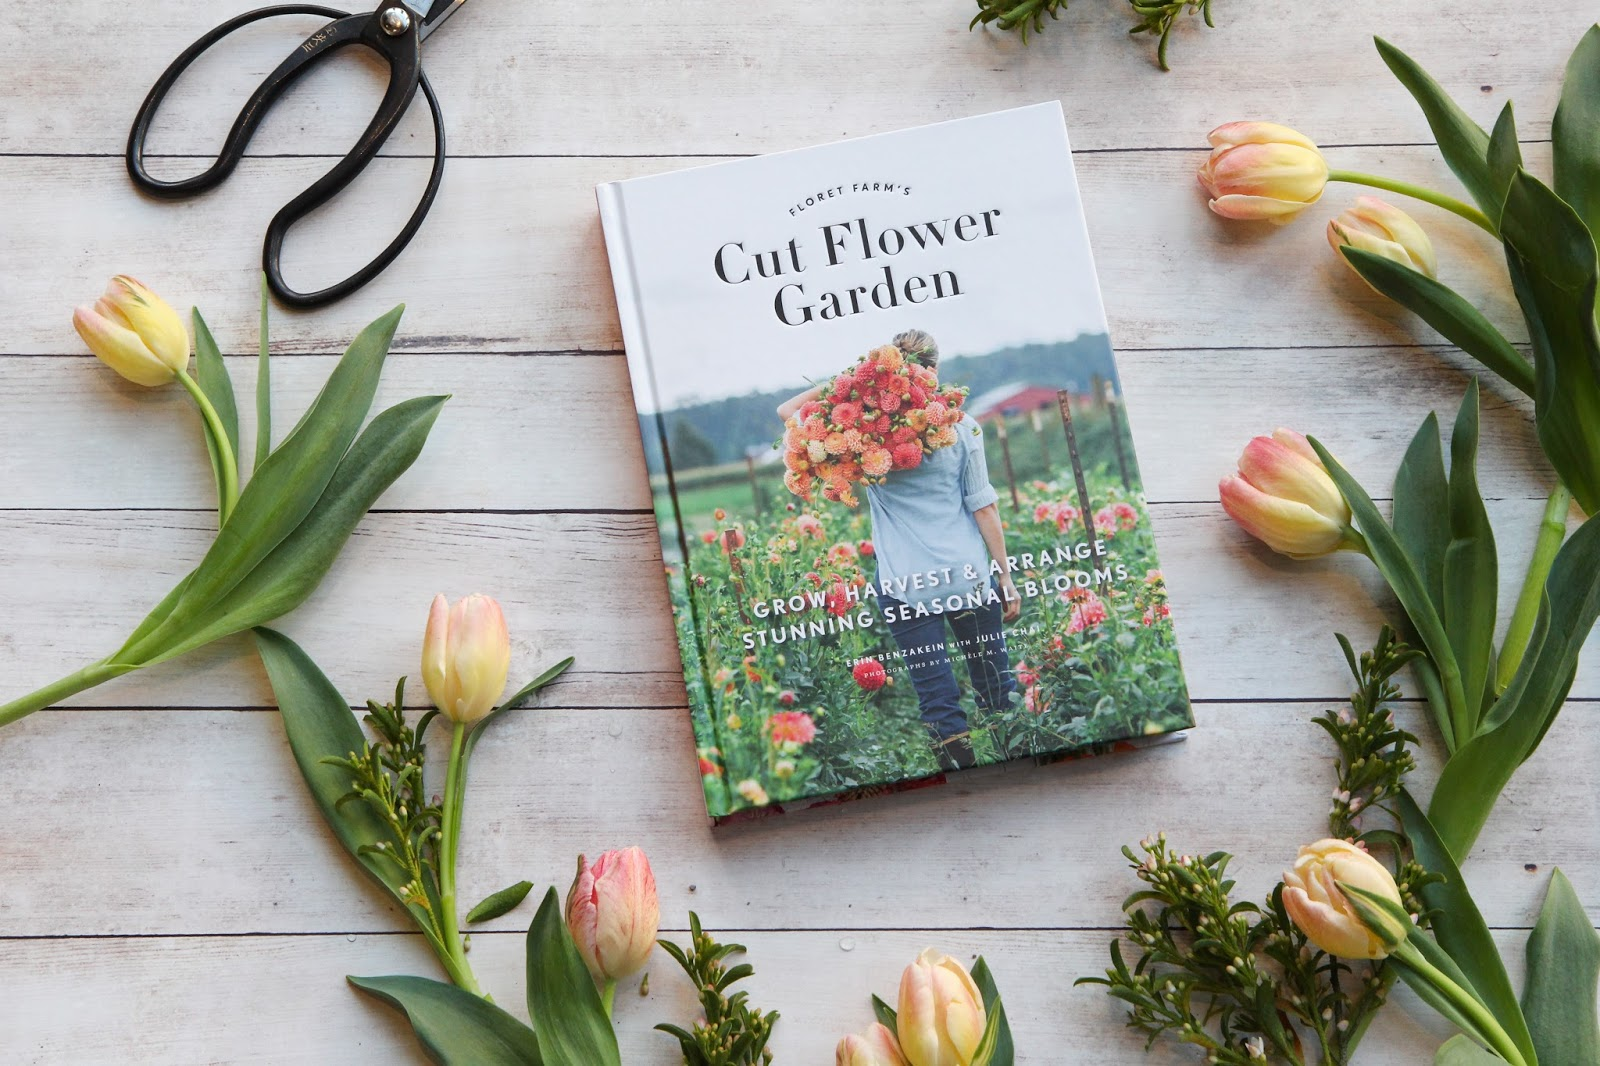 Iu0027ve Been An Avid Follower Of Erin Benzakeinu0027s Gorgeous Floral Centric  Instagram Feed Floret Farm For Quite Some Time Now, So When I First Heard  That She ...